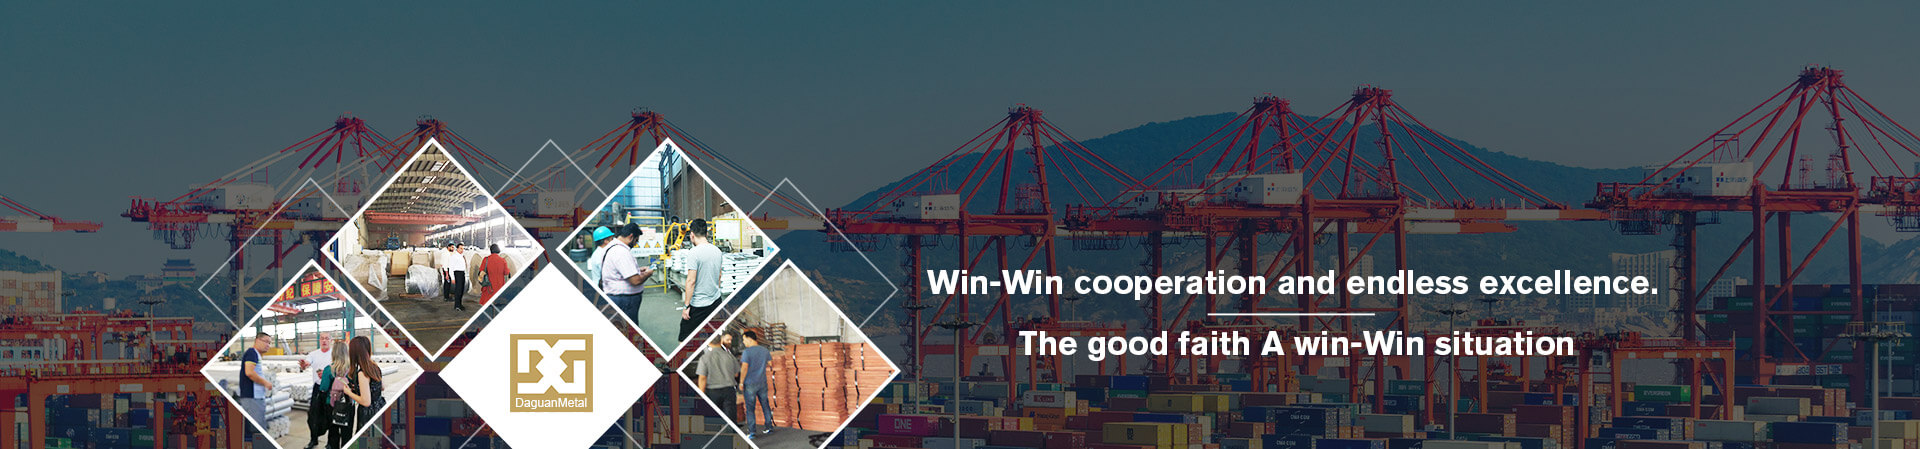 Win-Win cooperation and endless excellence